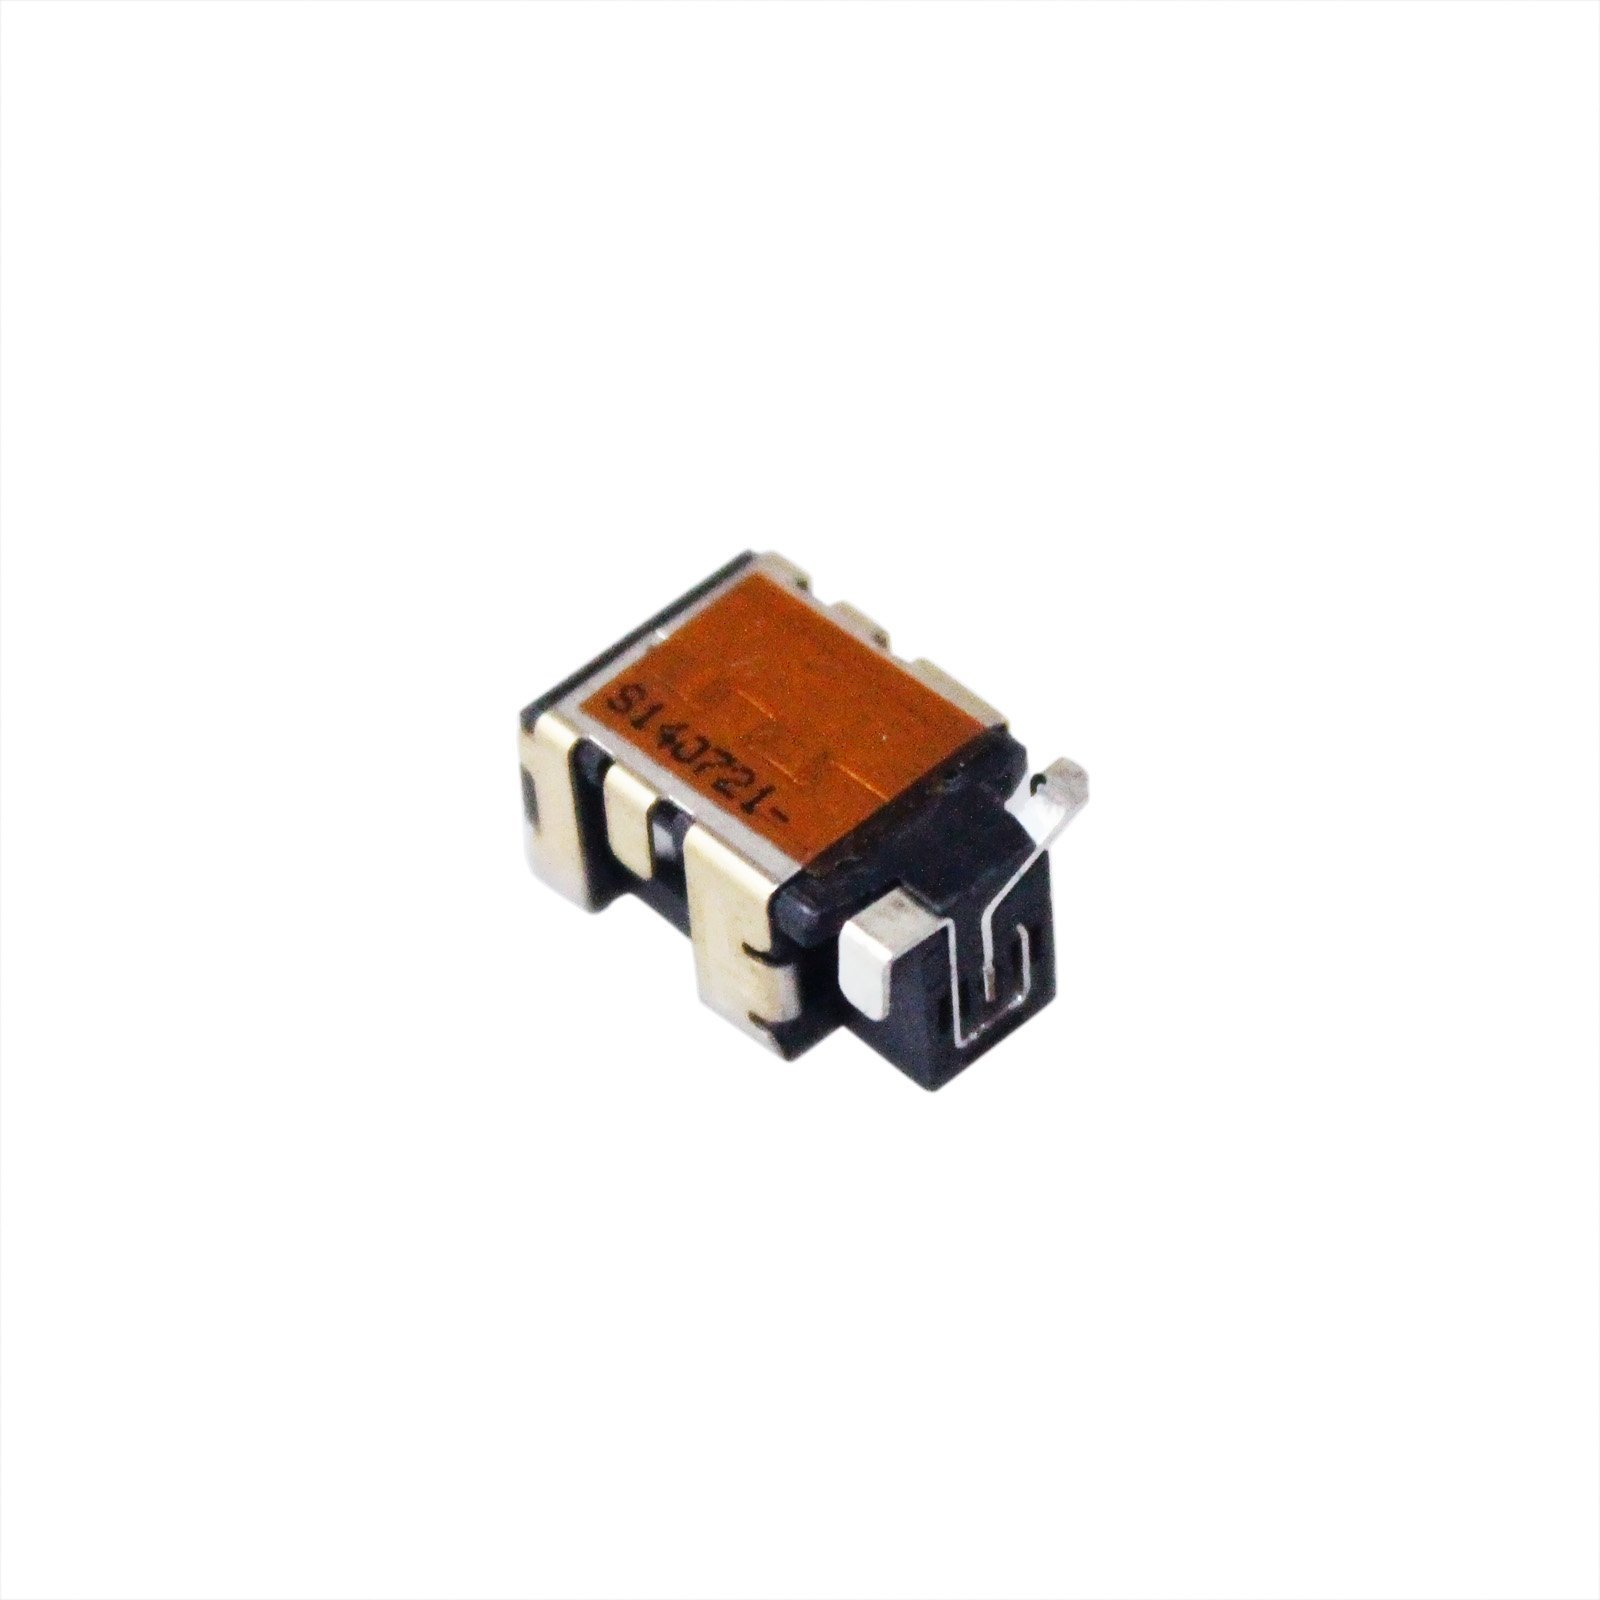 GinTai DC Power Jack Replacement for ASUS Compatible with n501jw ux501jw G501J G501JW G501JW-DS71 UX501V UX501VW by GinTai (Image #2)